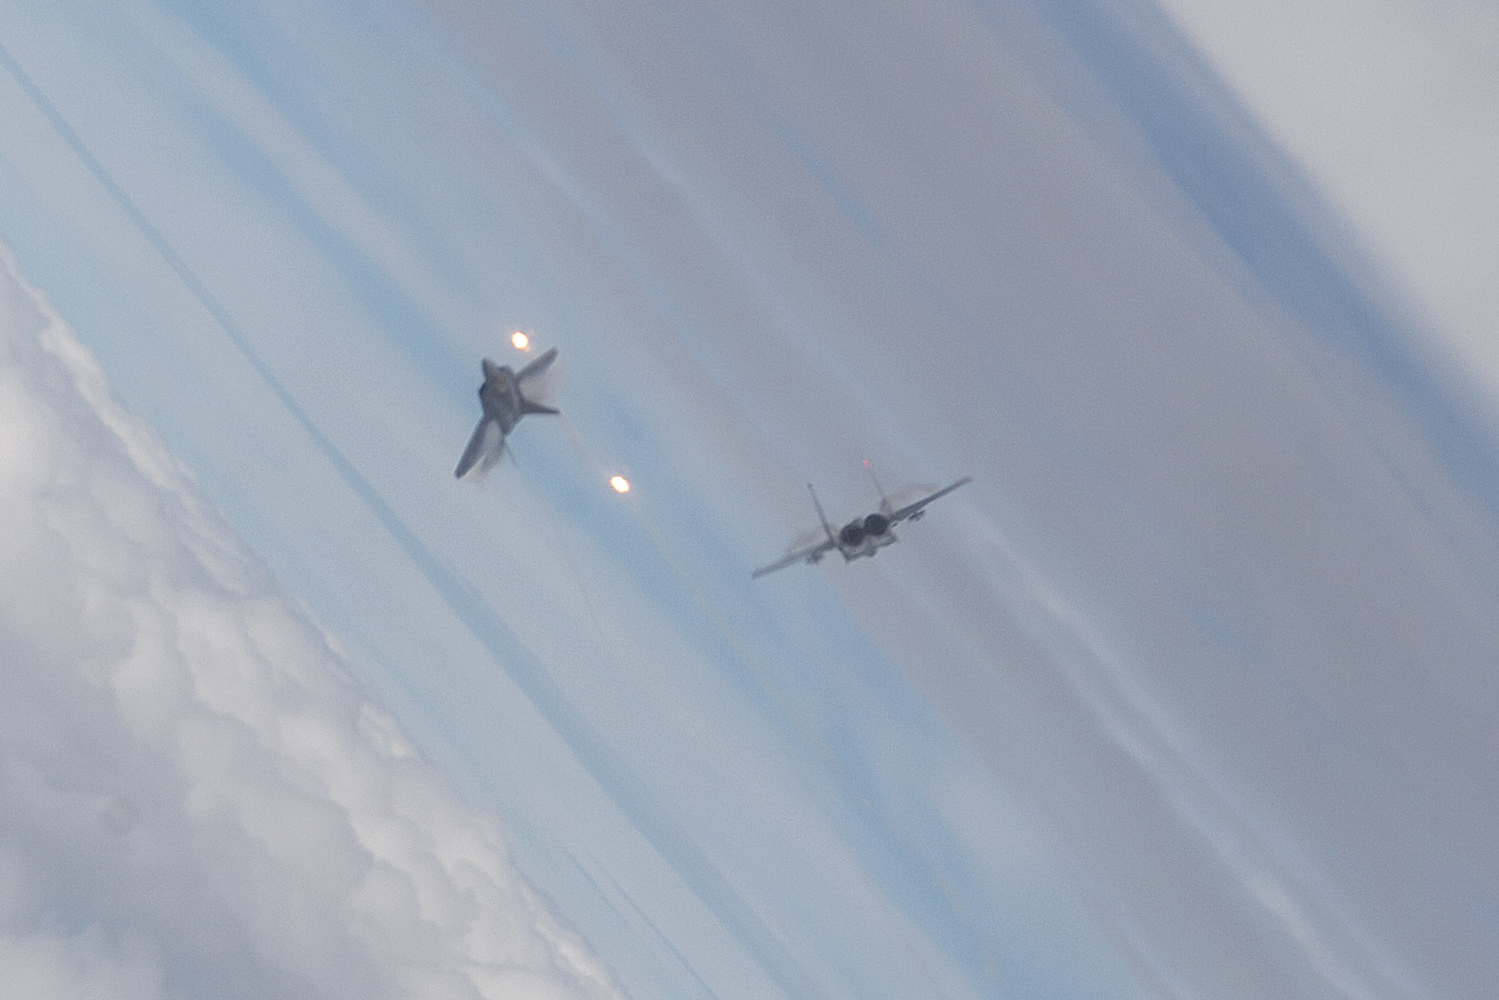 Impressive photo shows F-22 stealth jet dogfighting against F-15 at